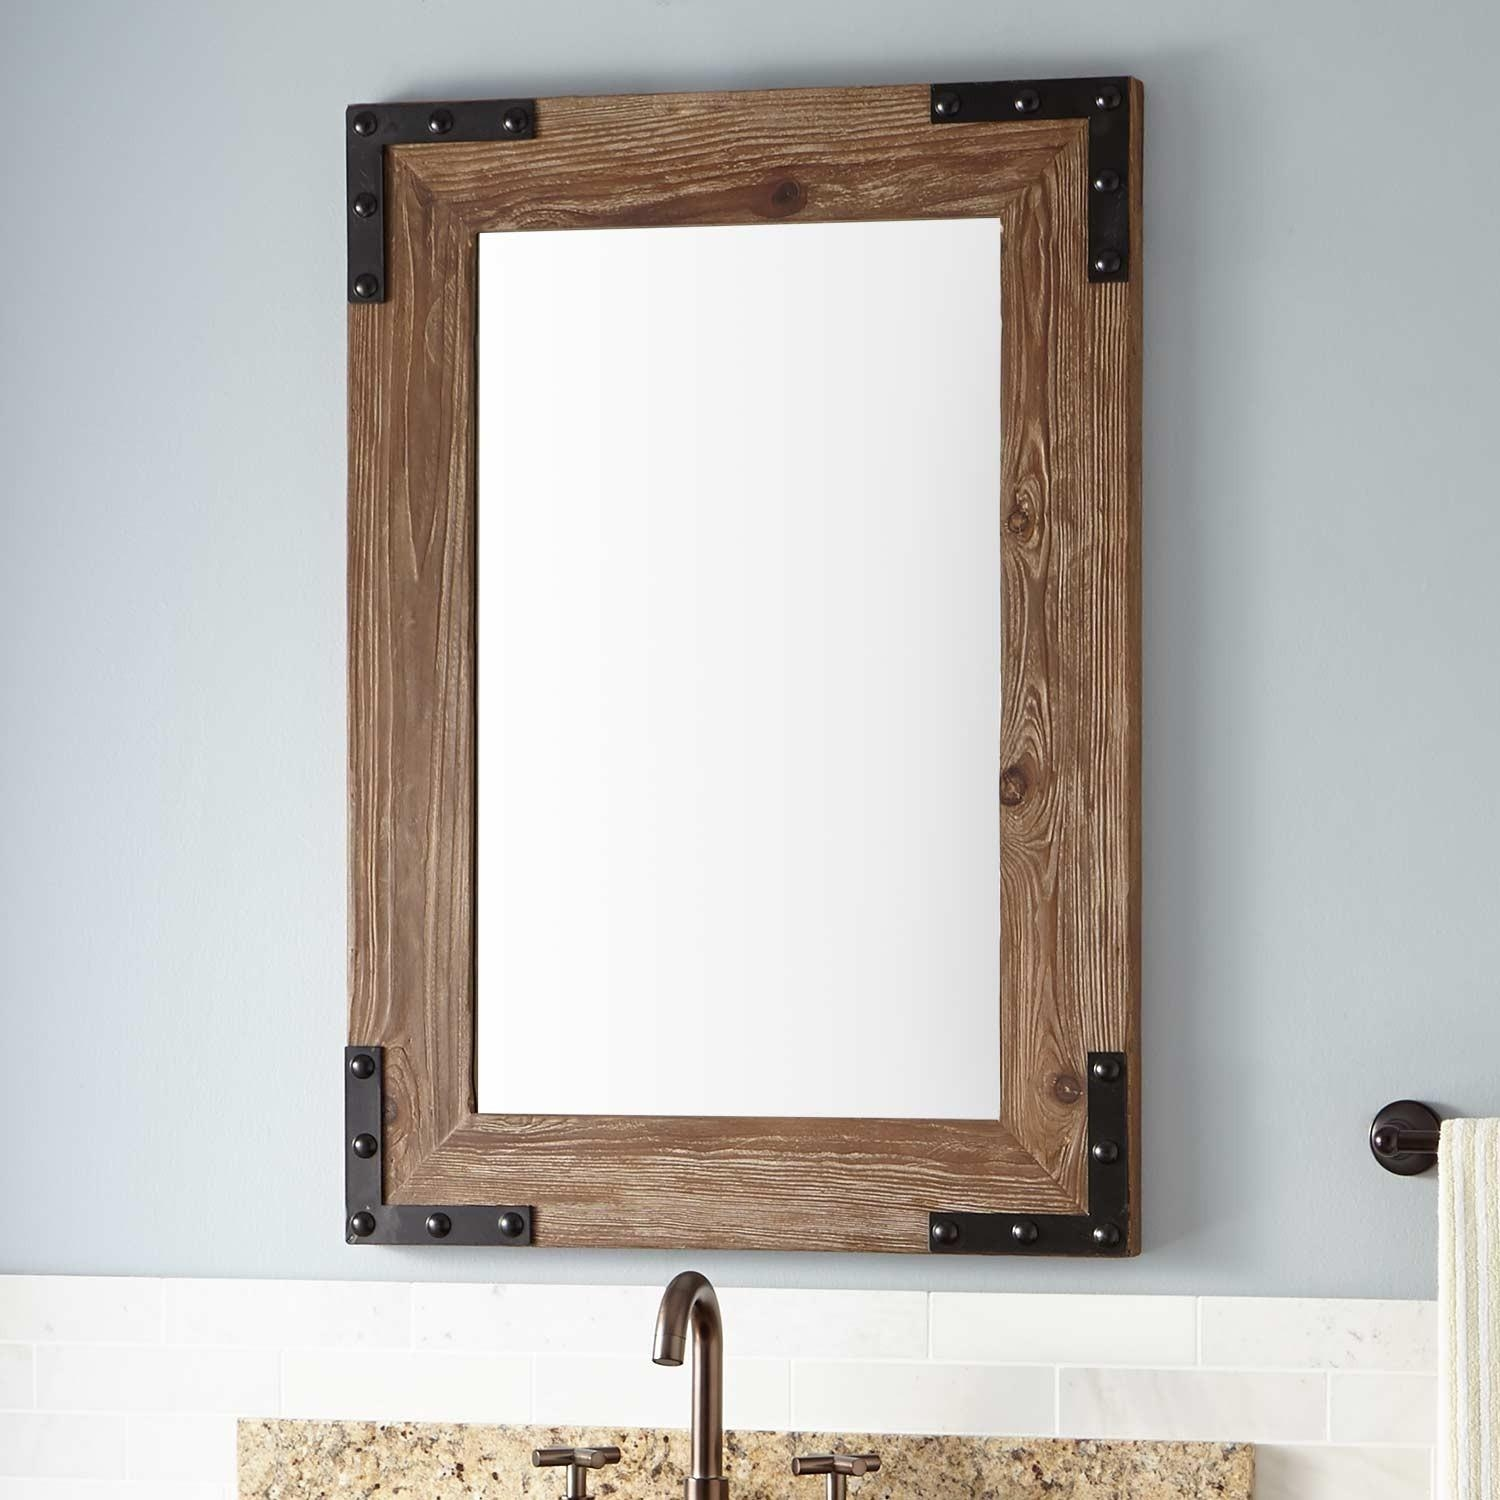 20 inspirations wood framed mirrors mirror ideas 15214